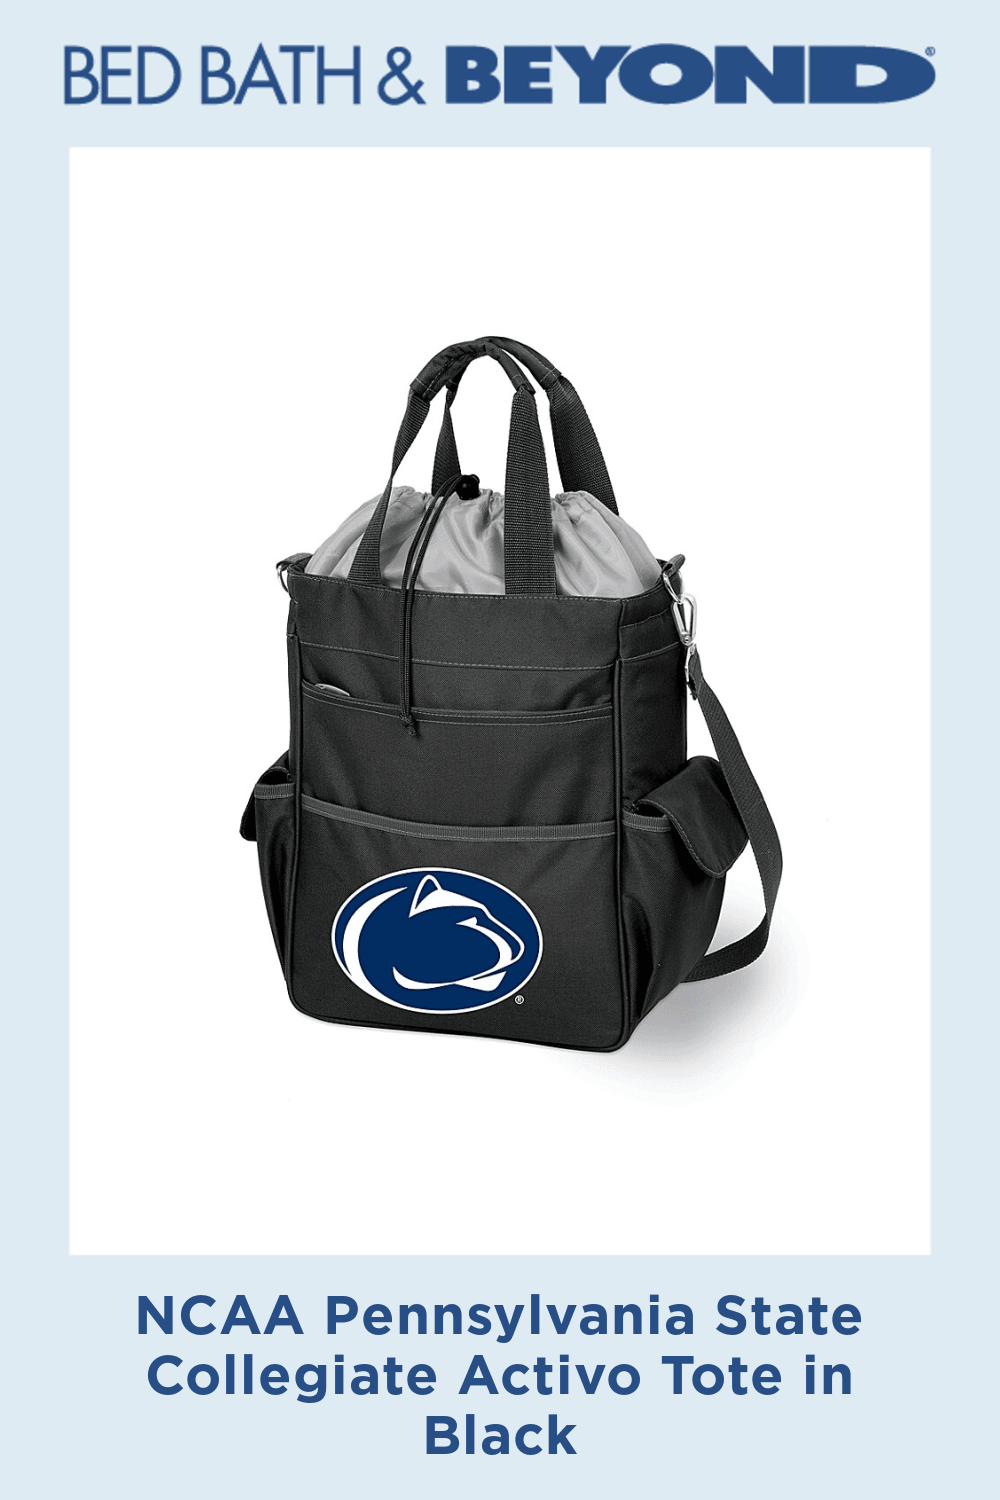 NCAA Pennsylvania State Collegiate Activo Tote in Black - NCAA Activo Totes are waterproof and feature a fully insulated compartment to provide plenty of room for food and drinks. Activo totes are ideal for the beach, sporting events, or long trips in the car.